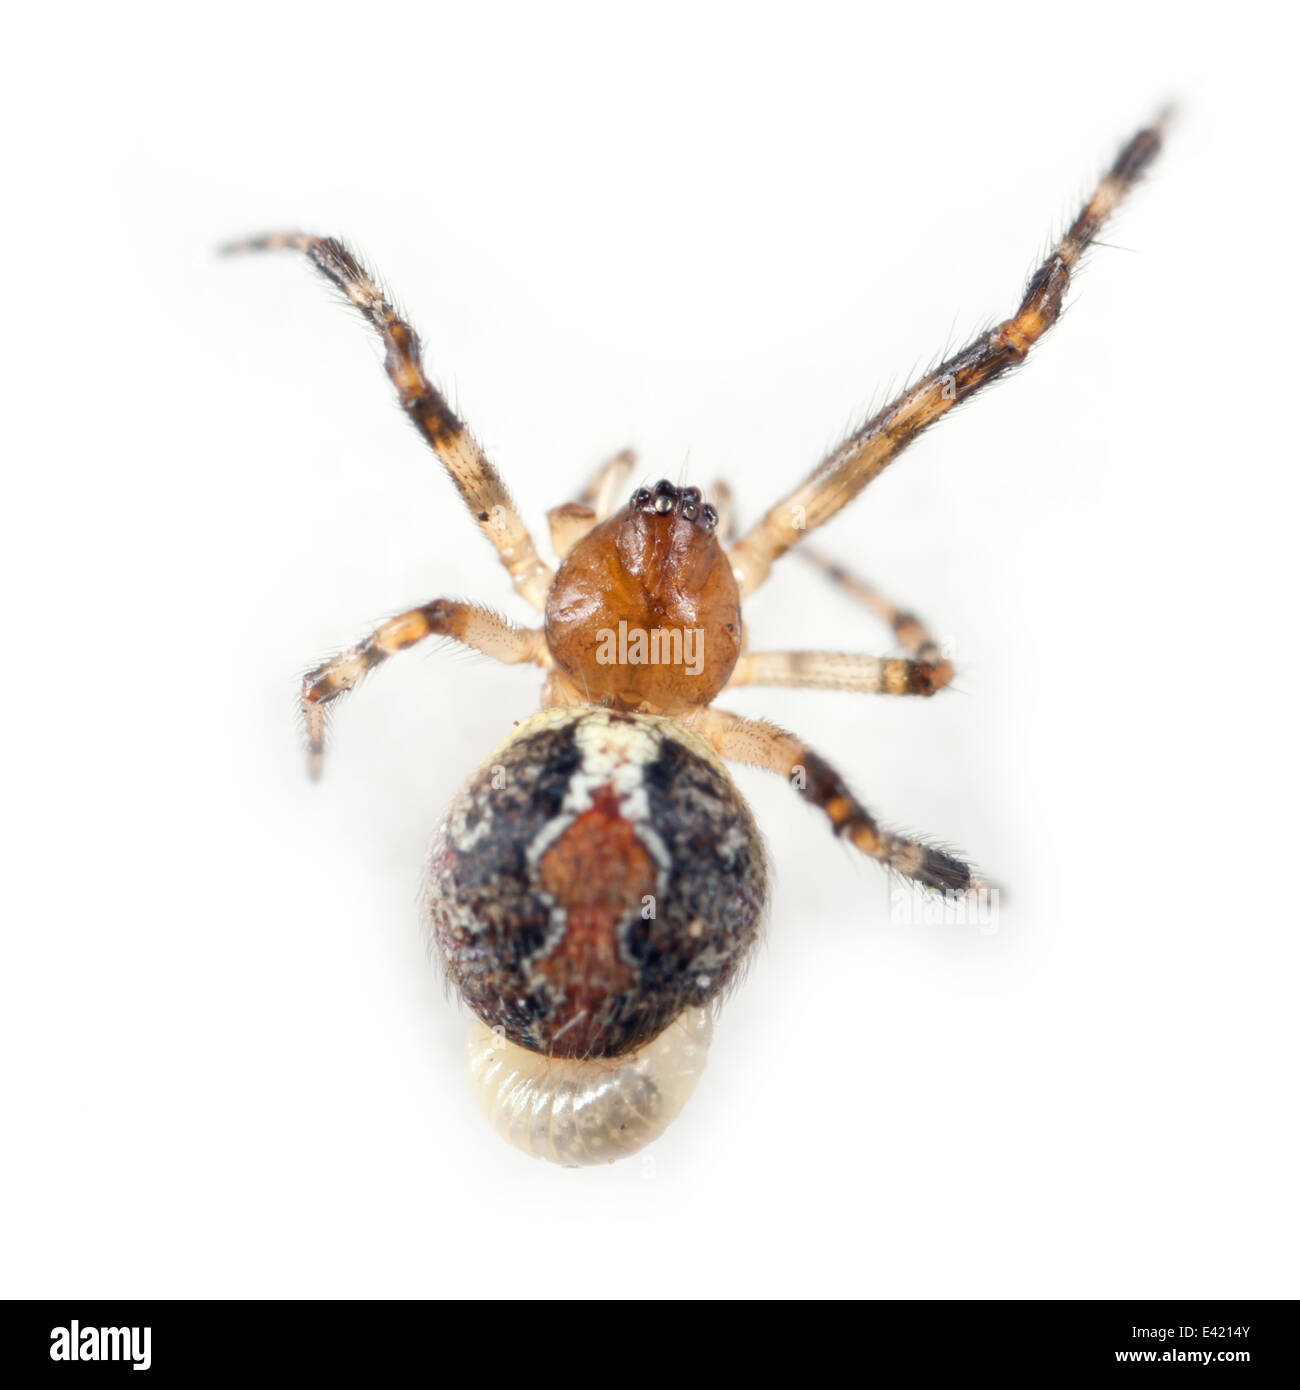 Female Theridion pinastri spider, part of the family Theridiidae (Cobweb weavers) with a parasite larva attached - Stock Image